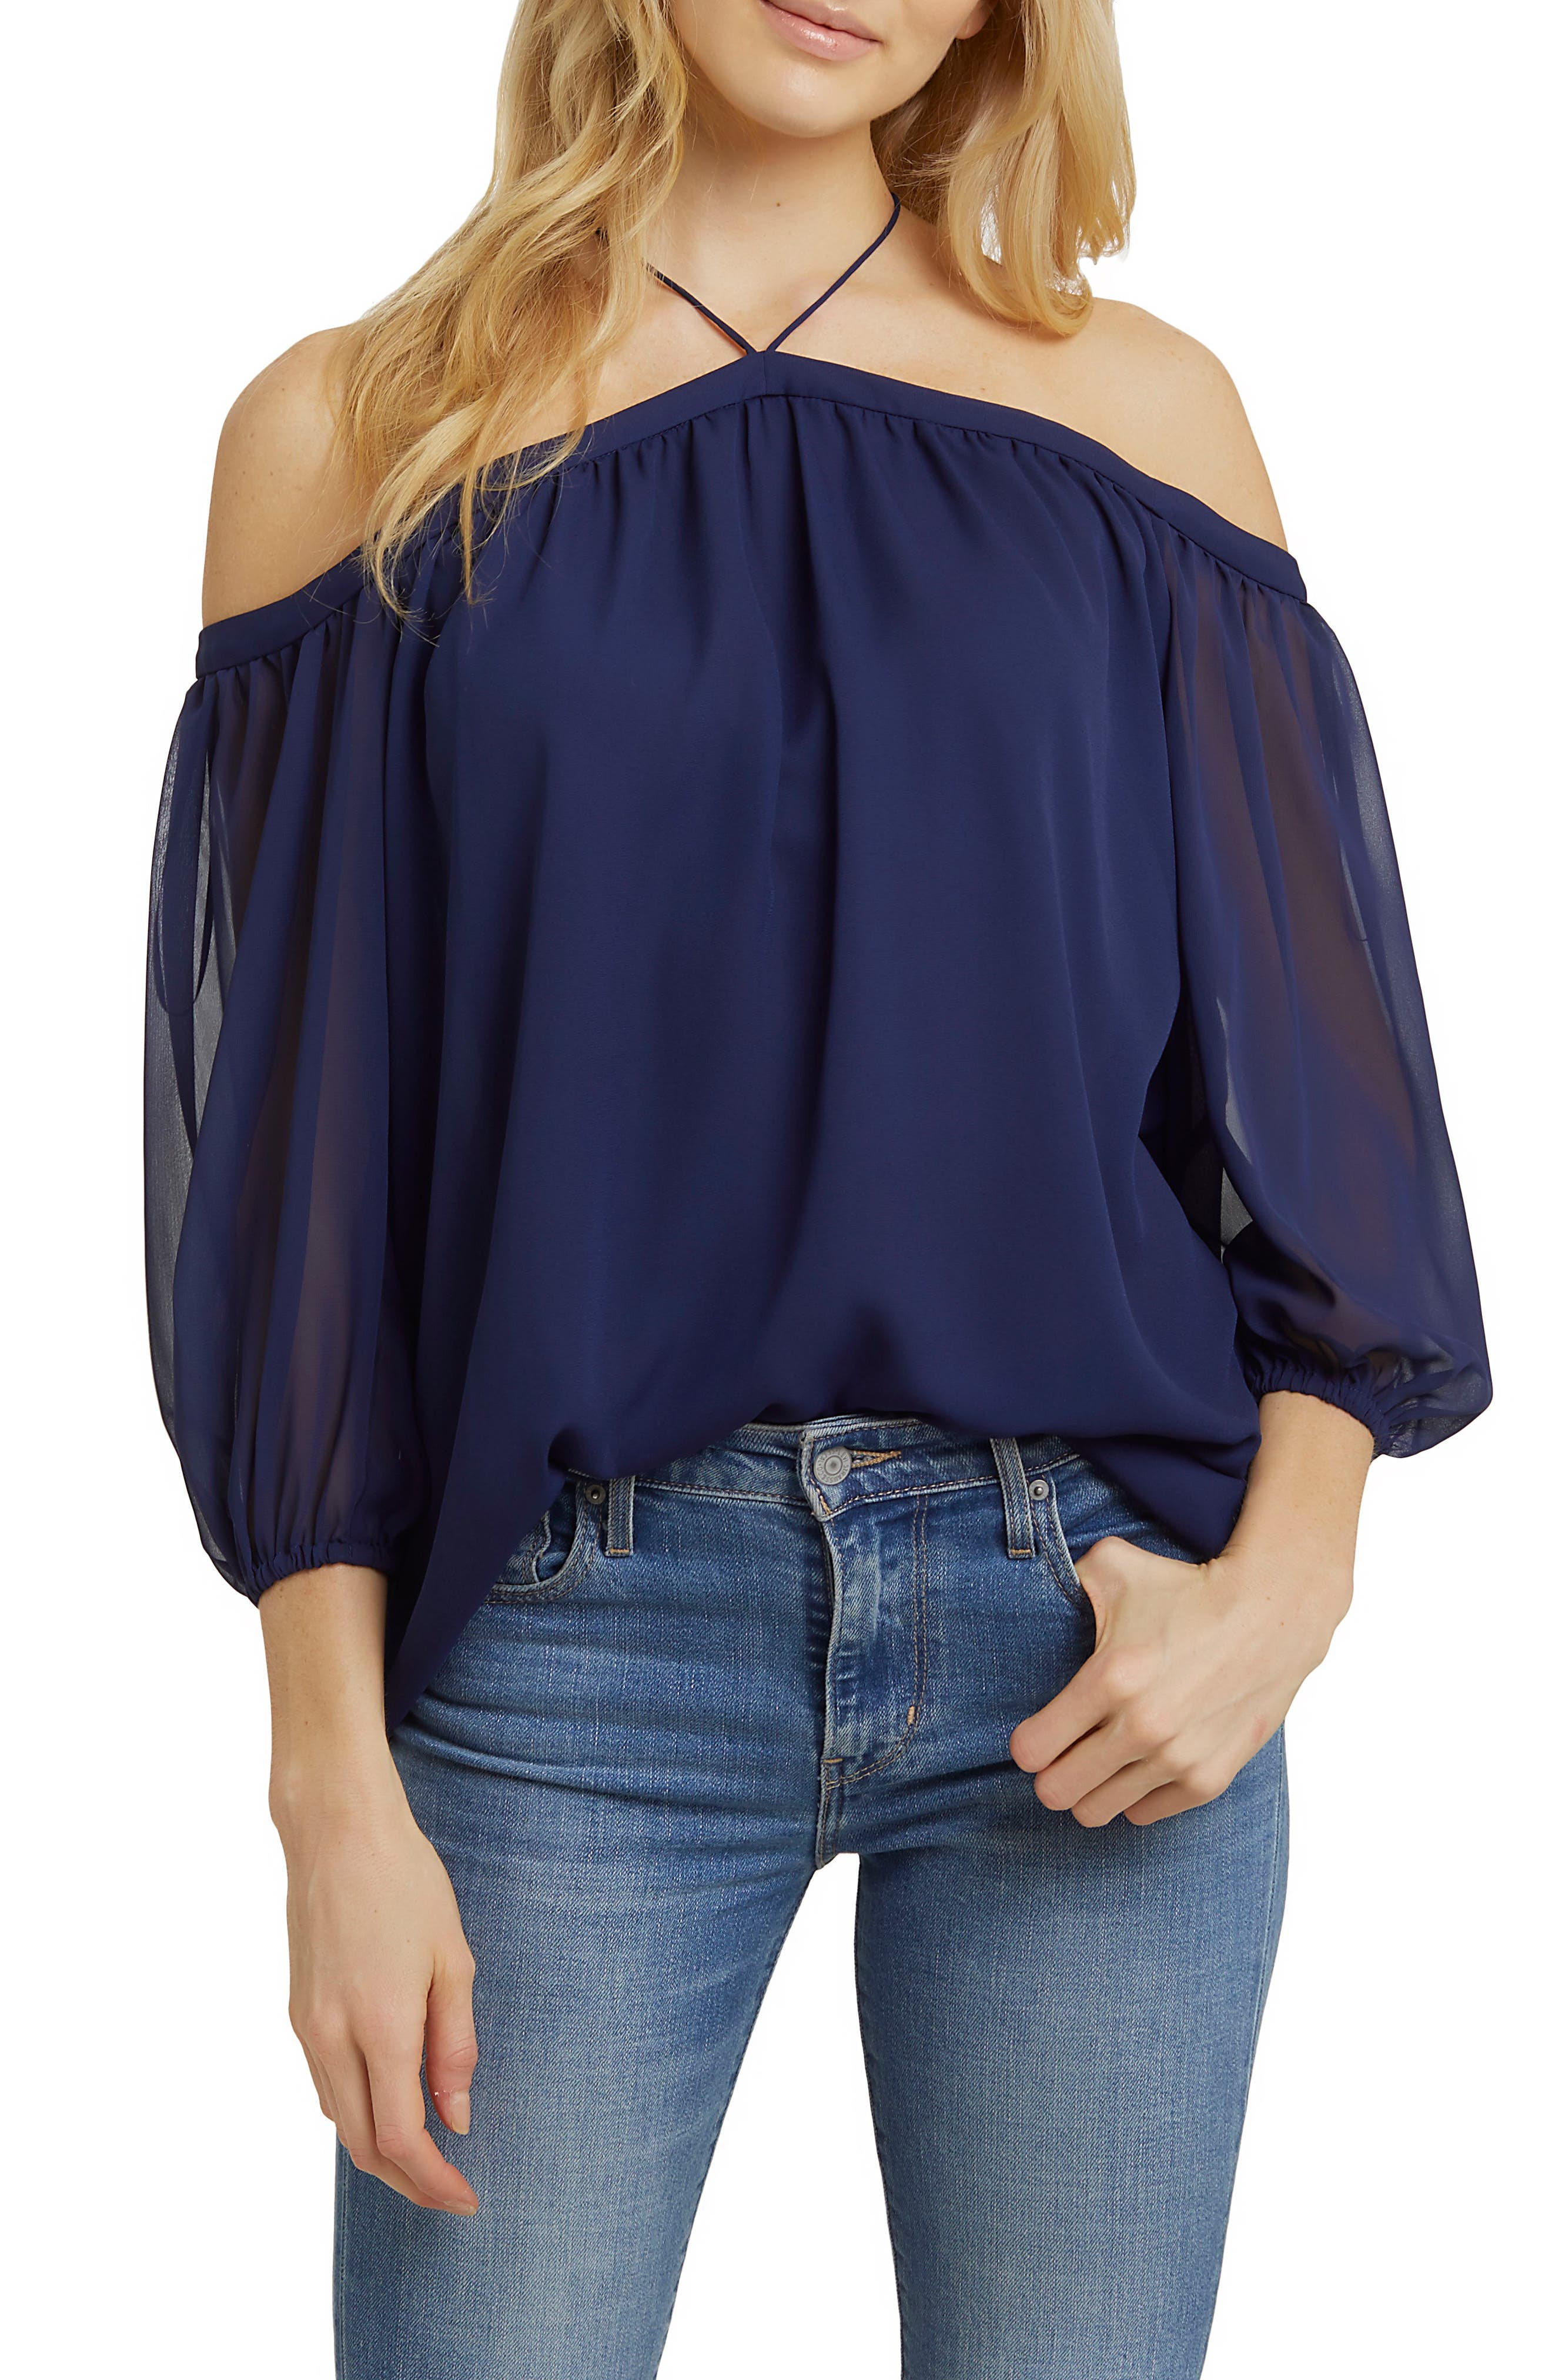 Alternate Image 1 Selected - 1.STATE Off the Shoulder Sheer Chiffon Blouse